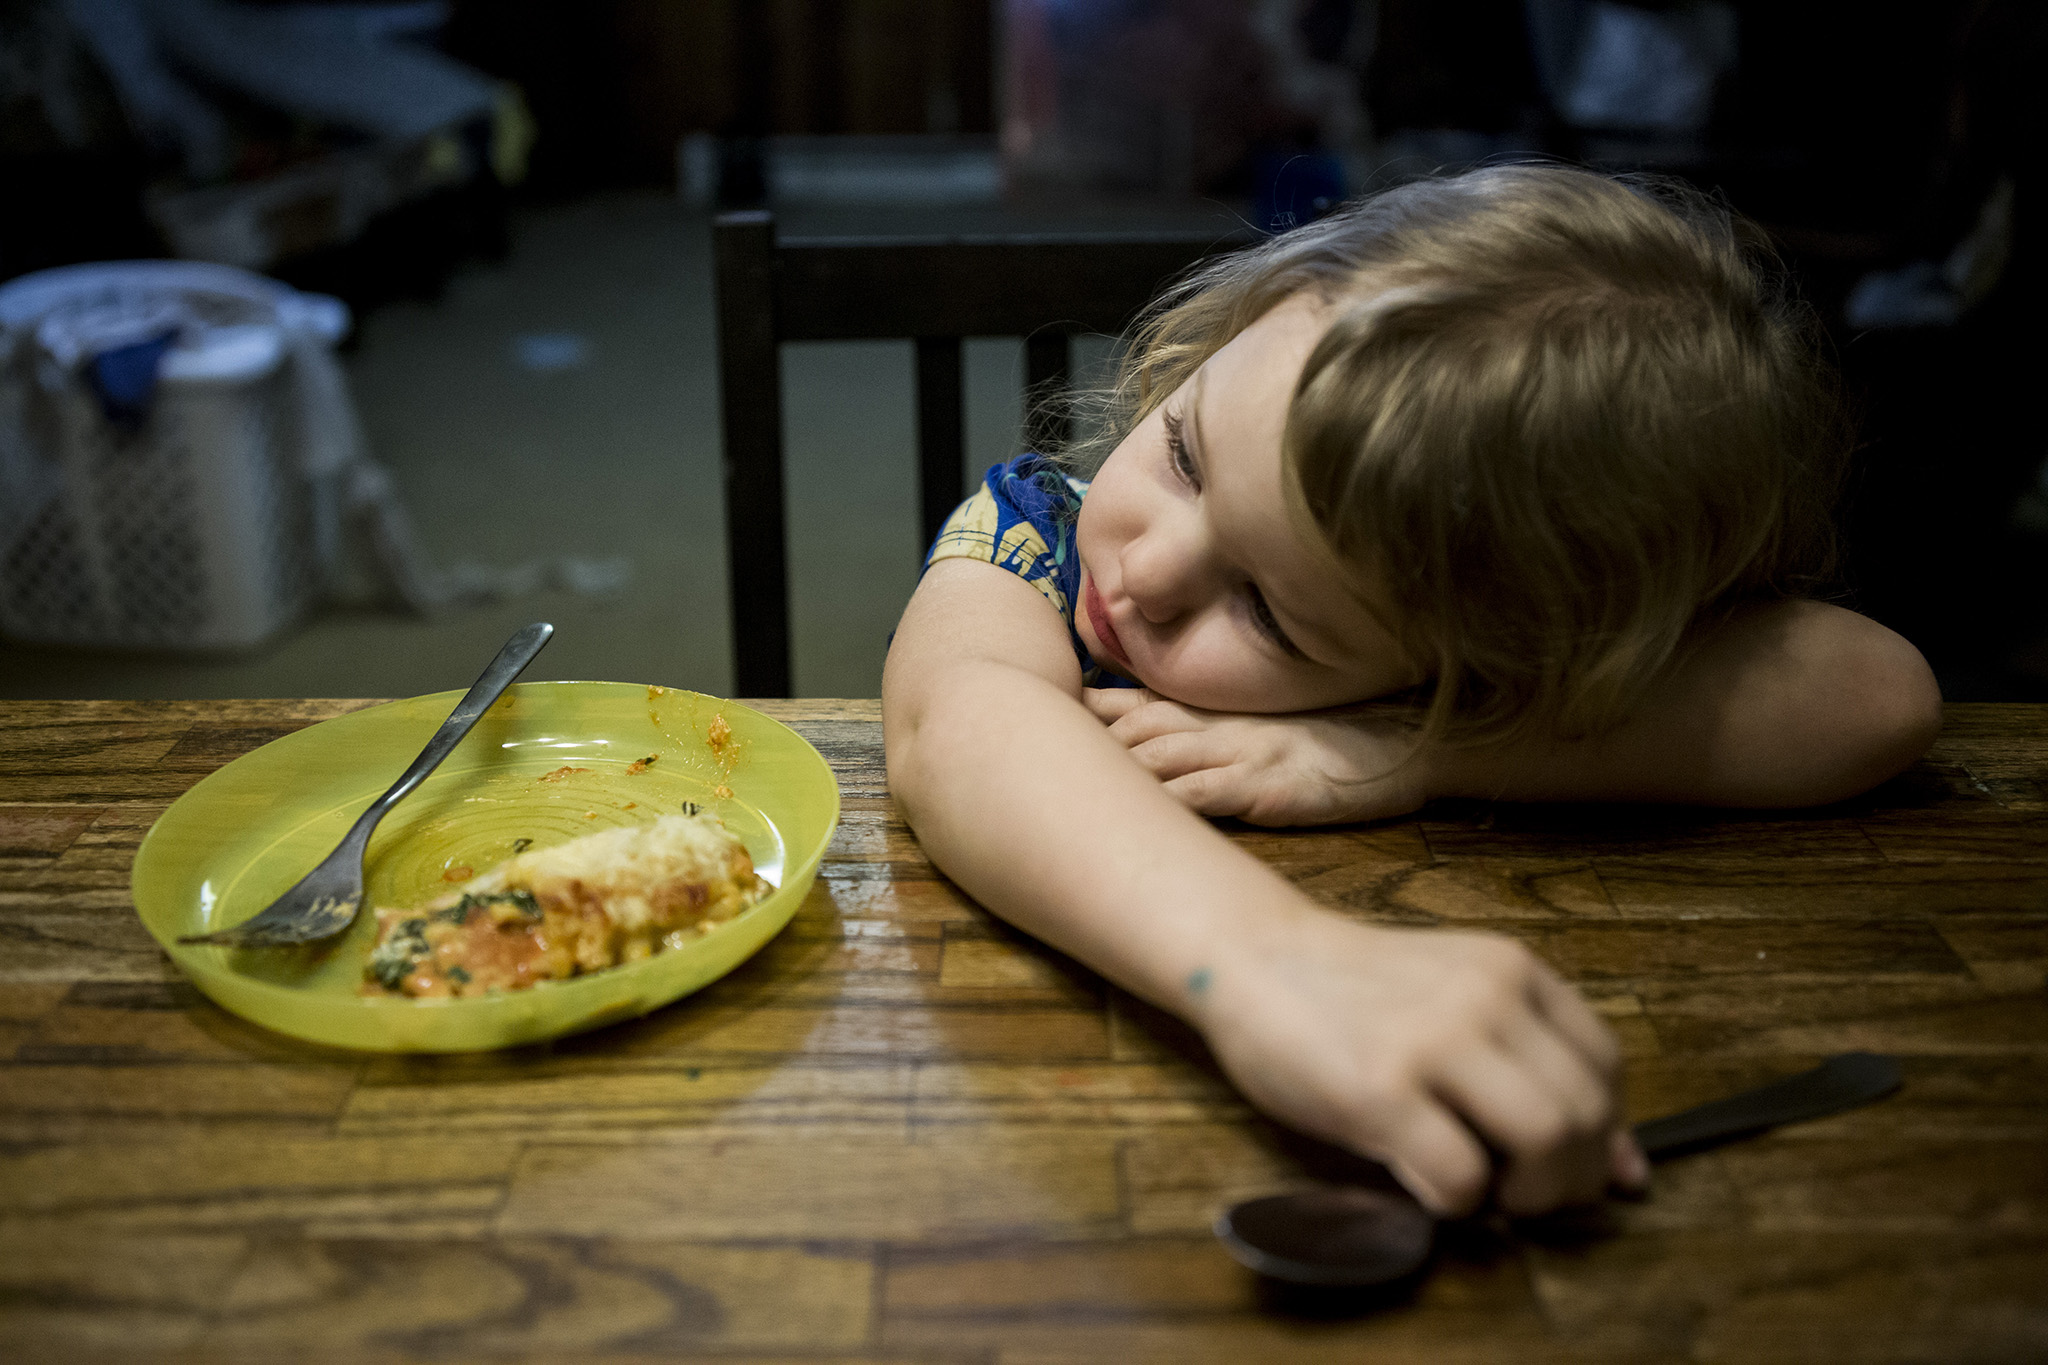 Real Life family pictures in Connecticut of a little girl who looks very tired laying her head on the dinner table with her half finished dinner sitting next to her.